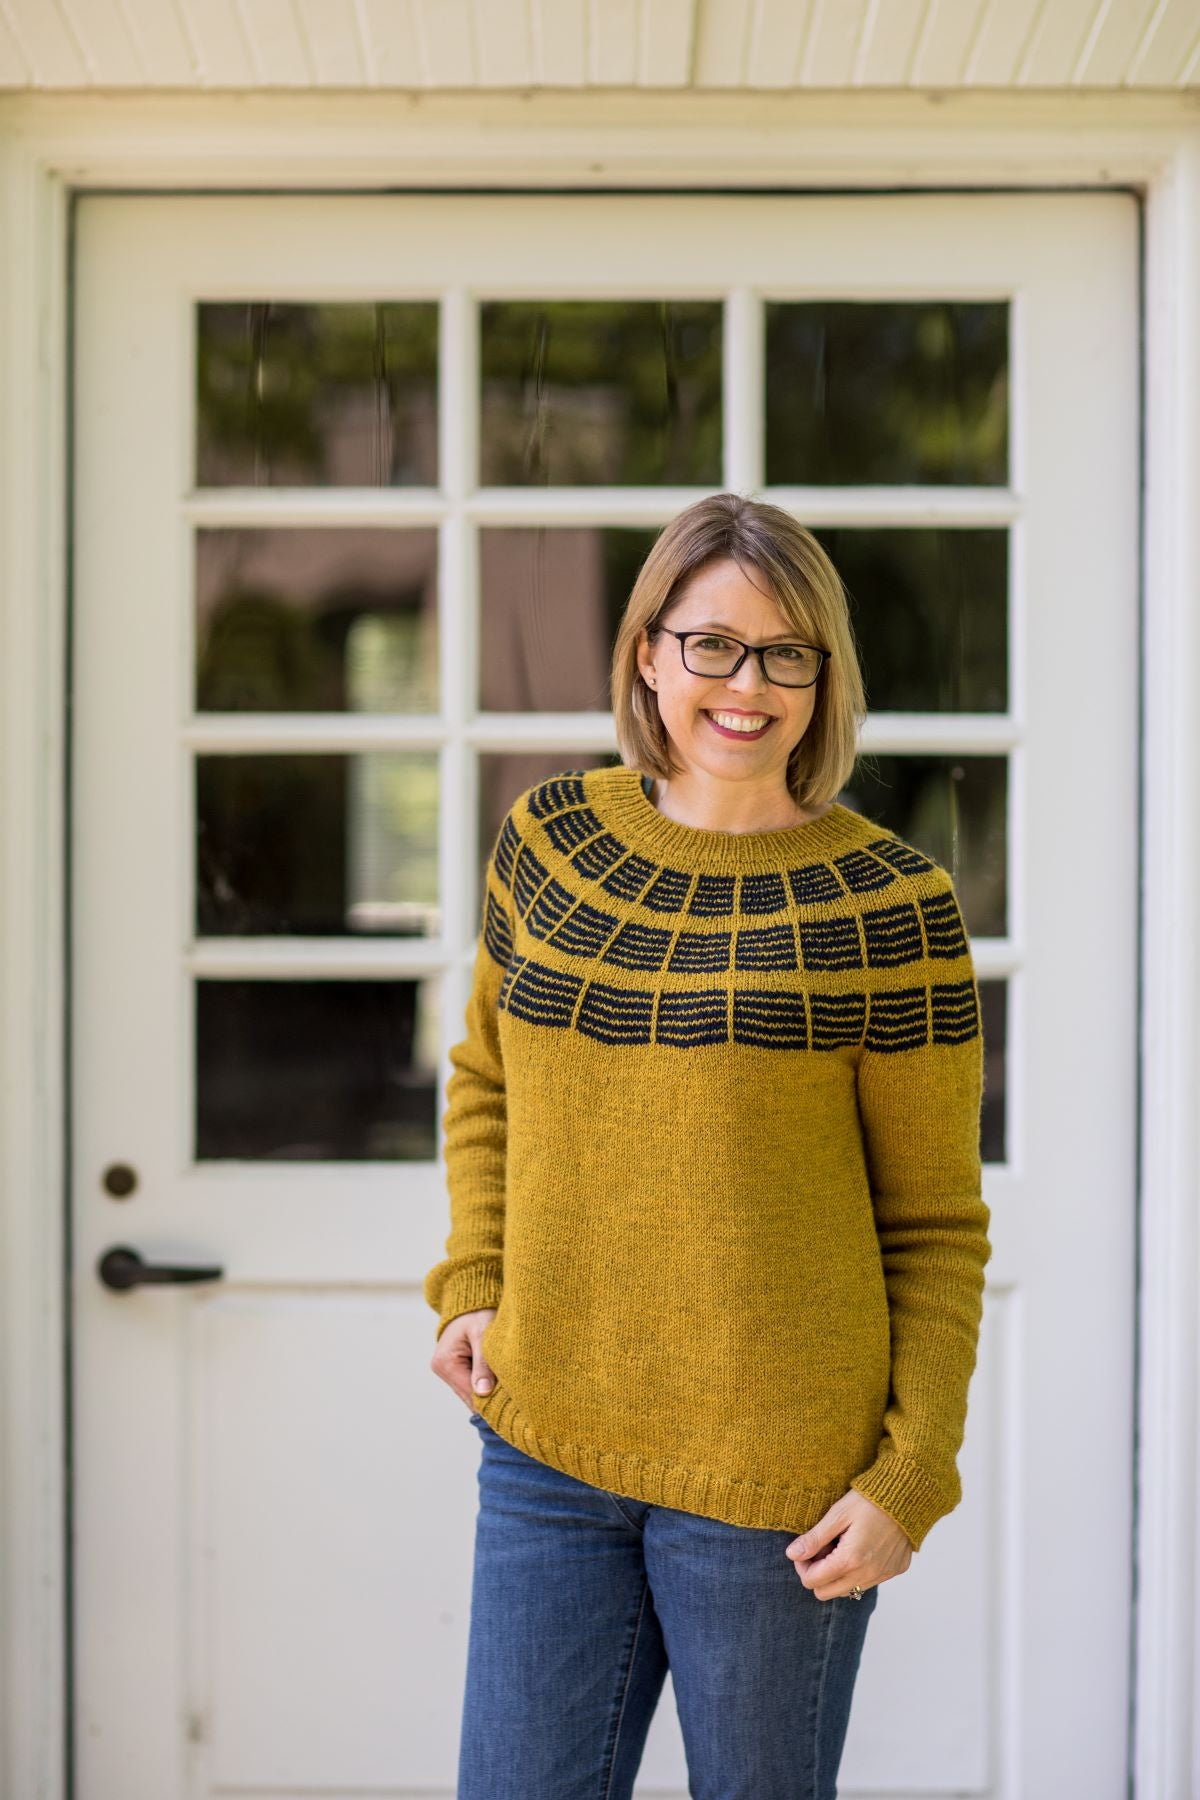 Olive Knits 4-Day Sweater KAL